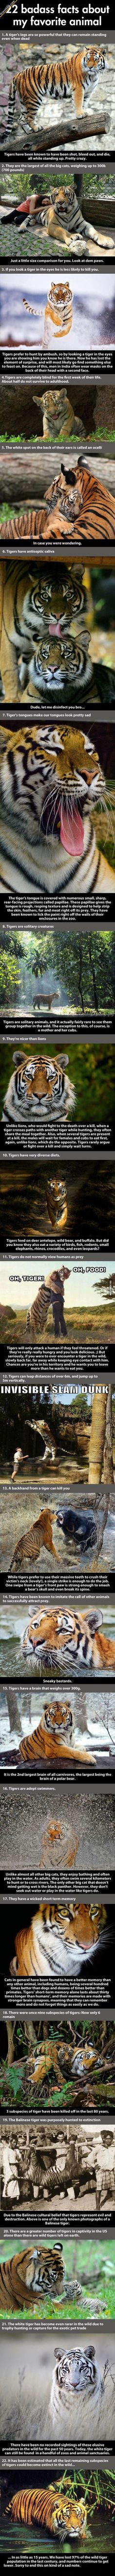 22 Badass Facts About Tigers | Click the link to view full image and description : )